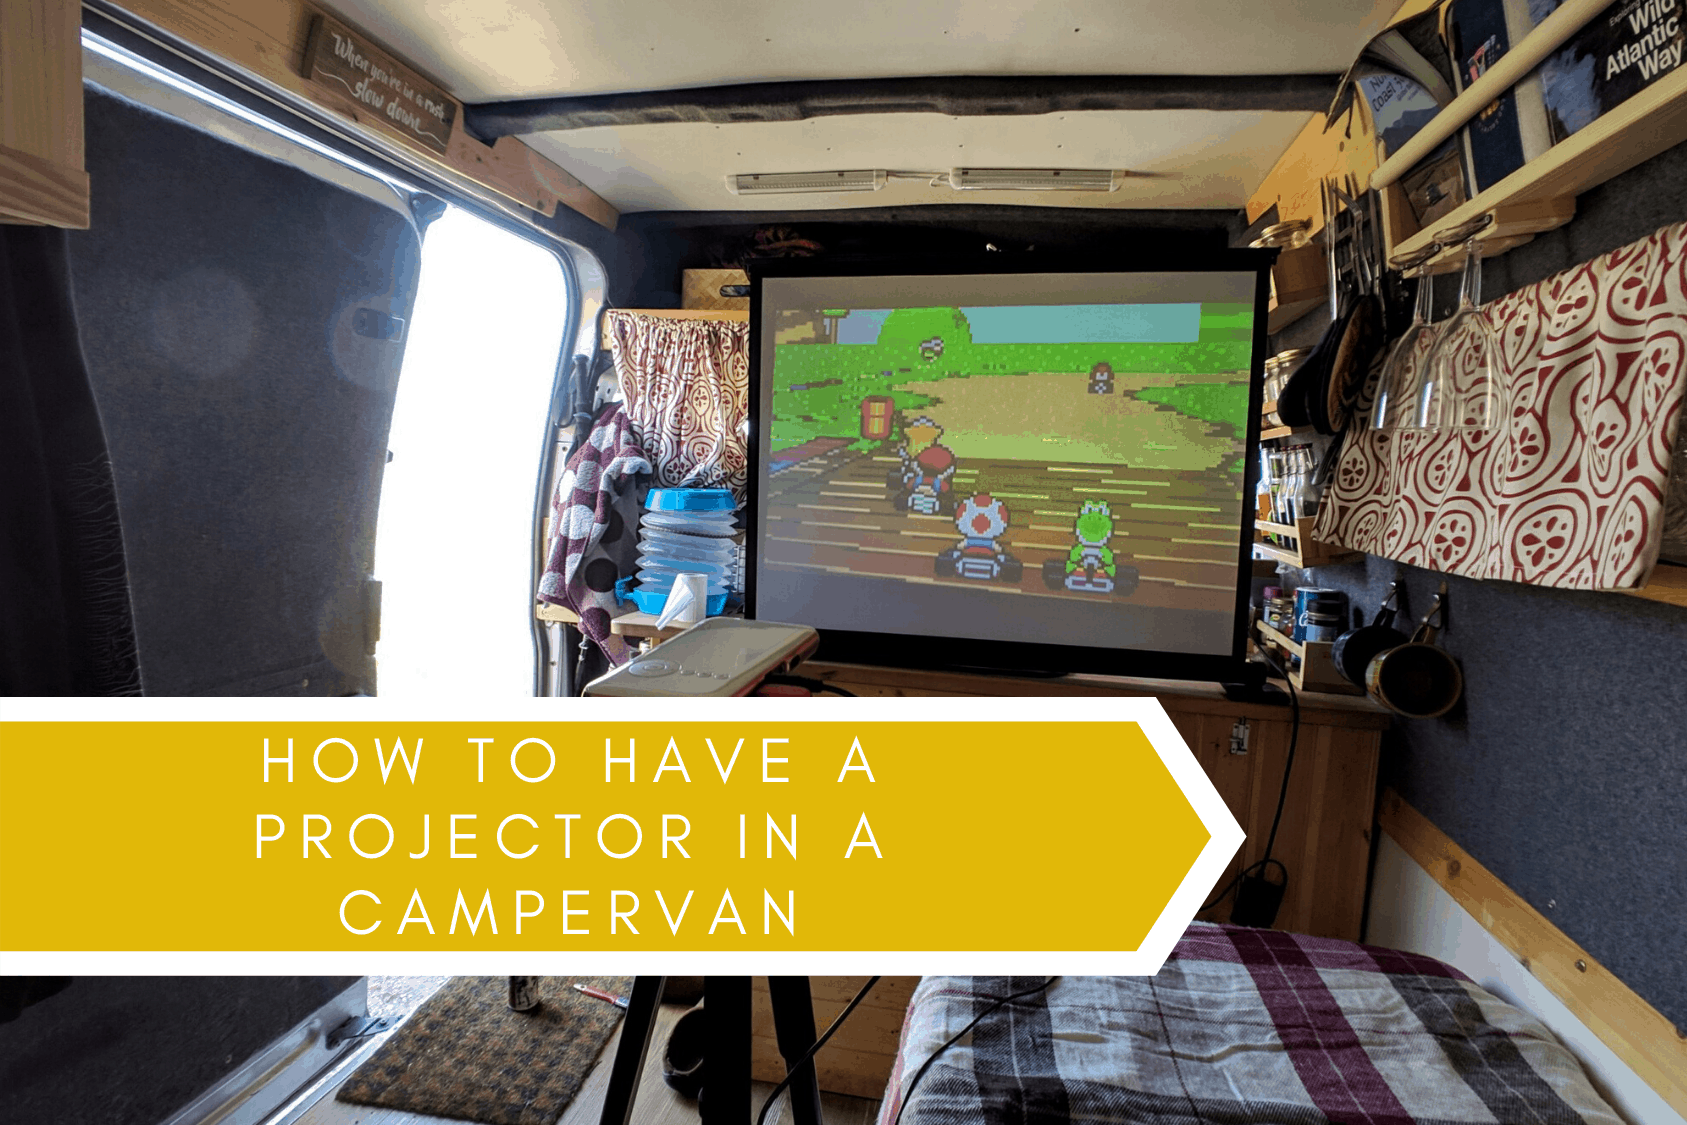 Campervan projector